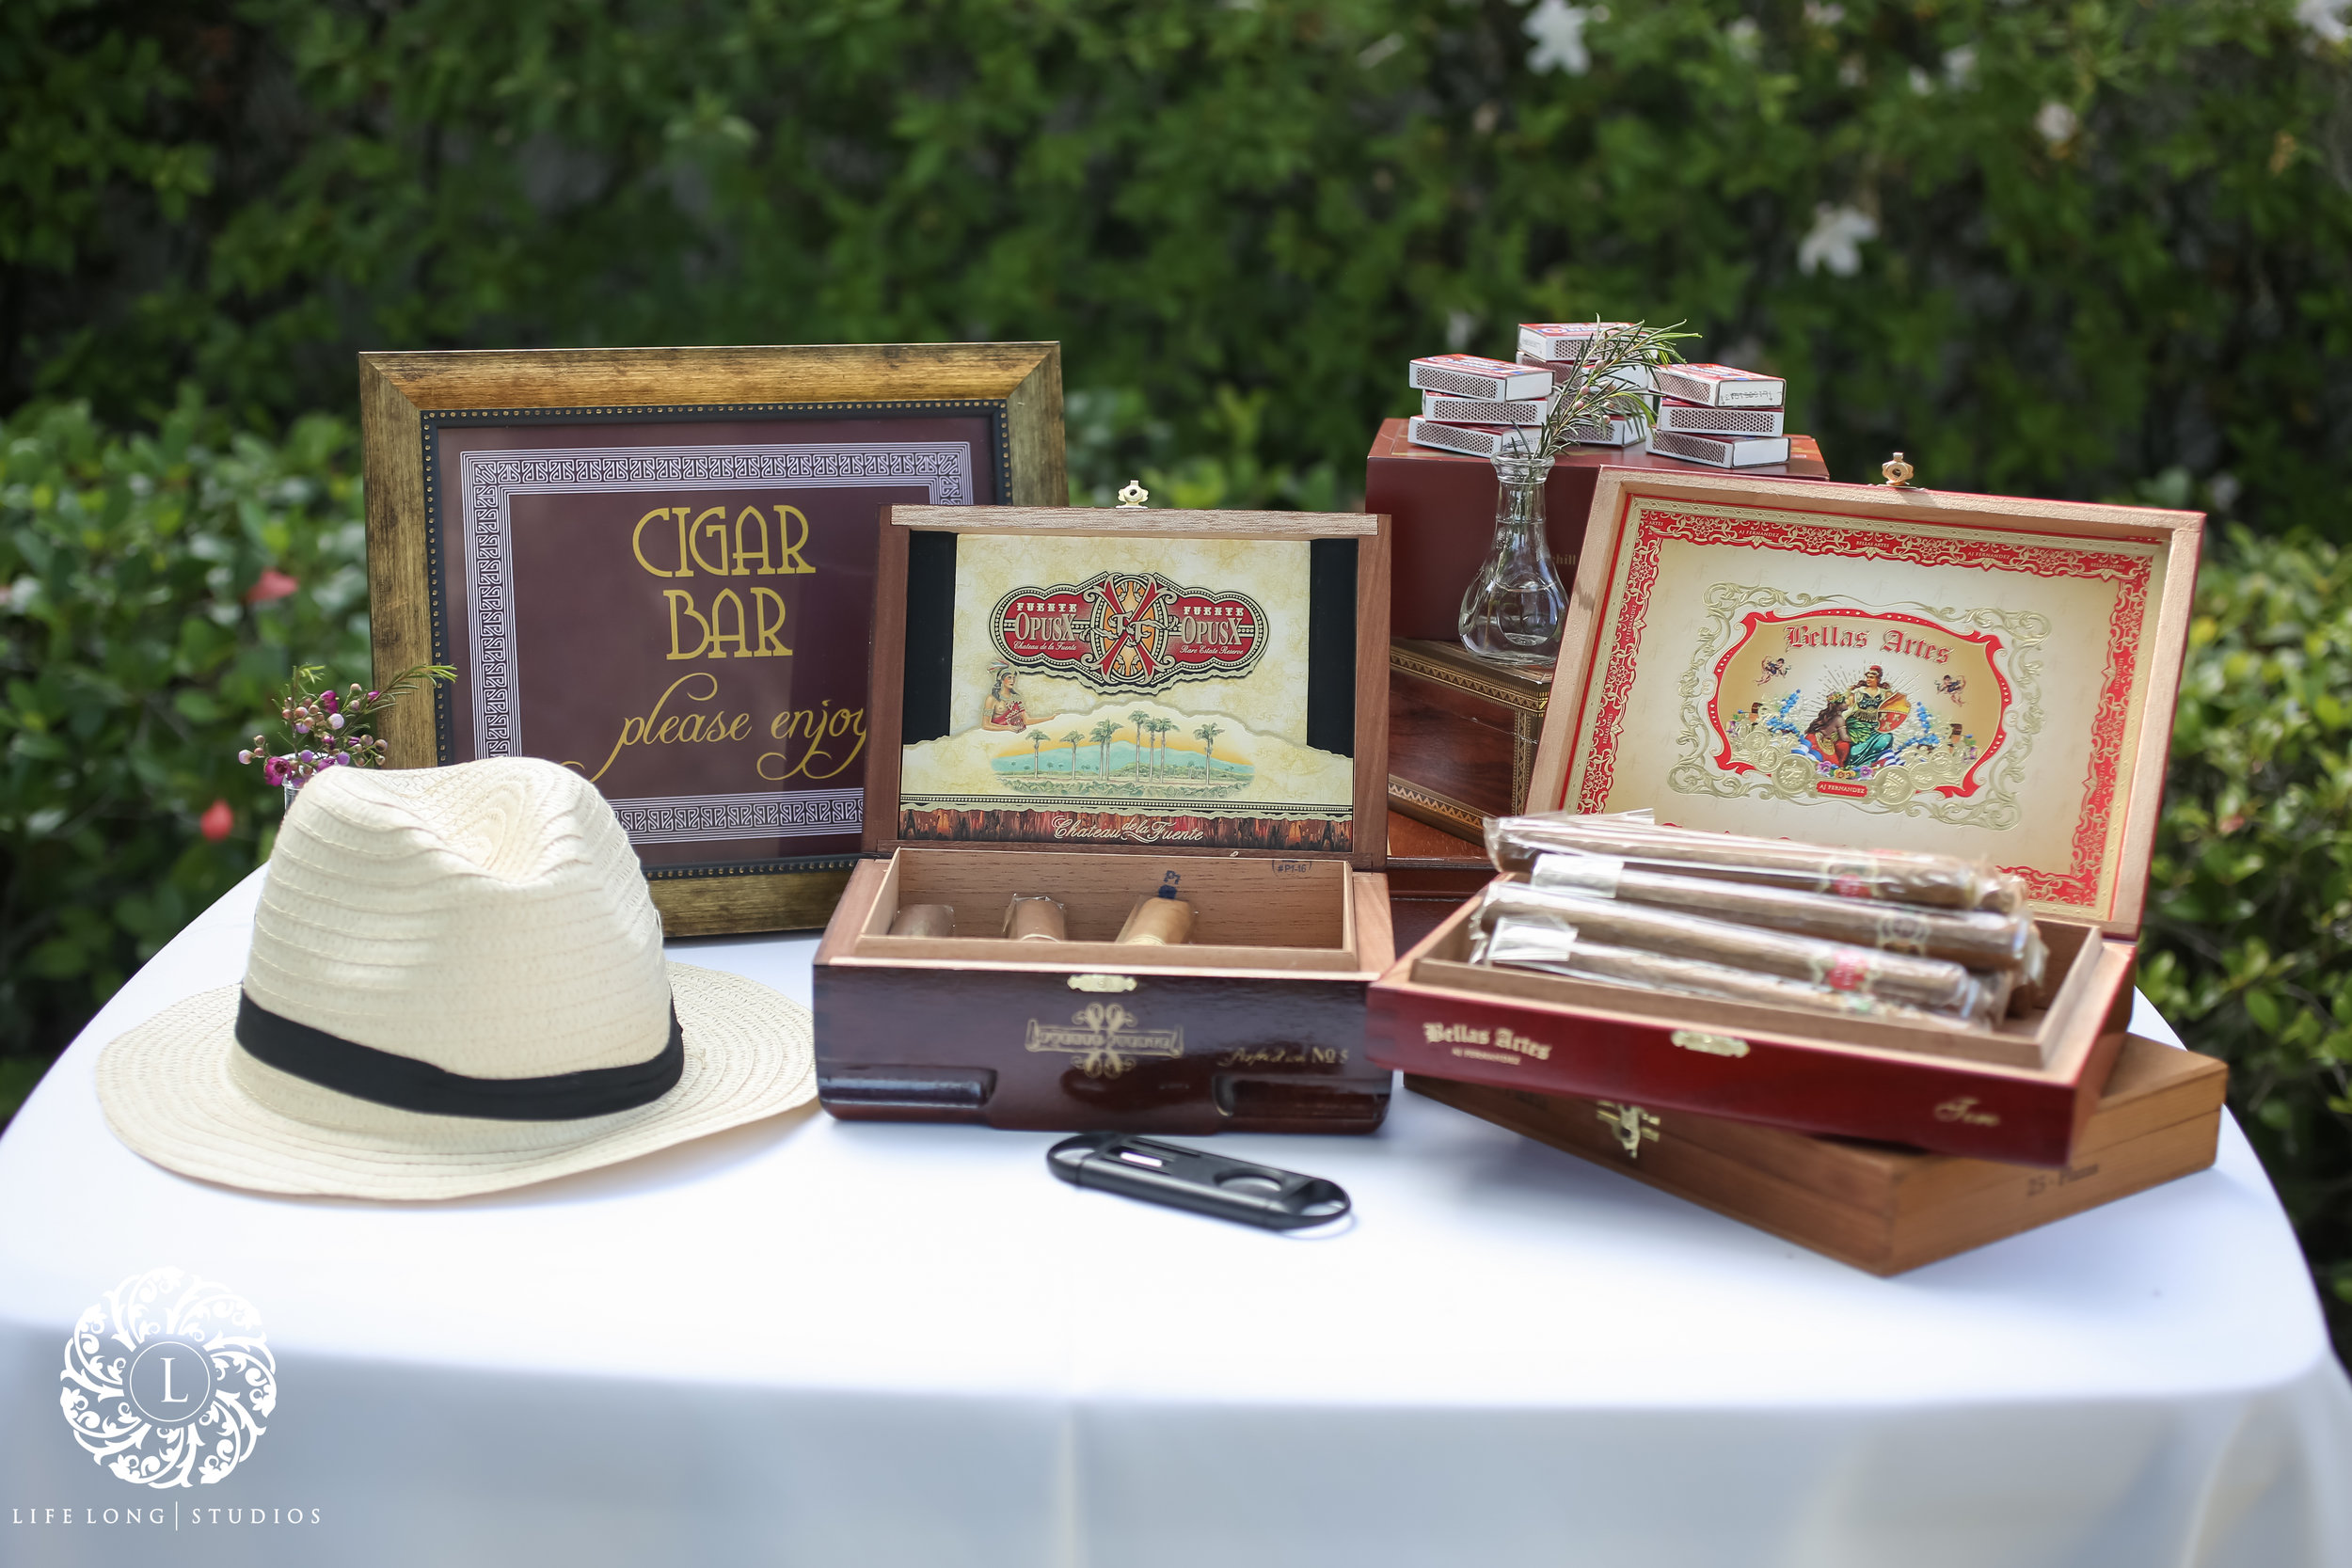 A cigar bar, with authentic vintage cigar boxes, was available for guests during the cocktail hour and reception.